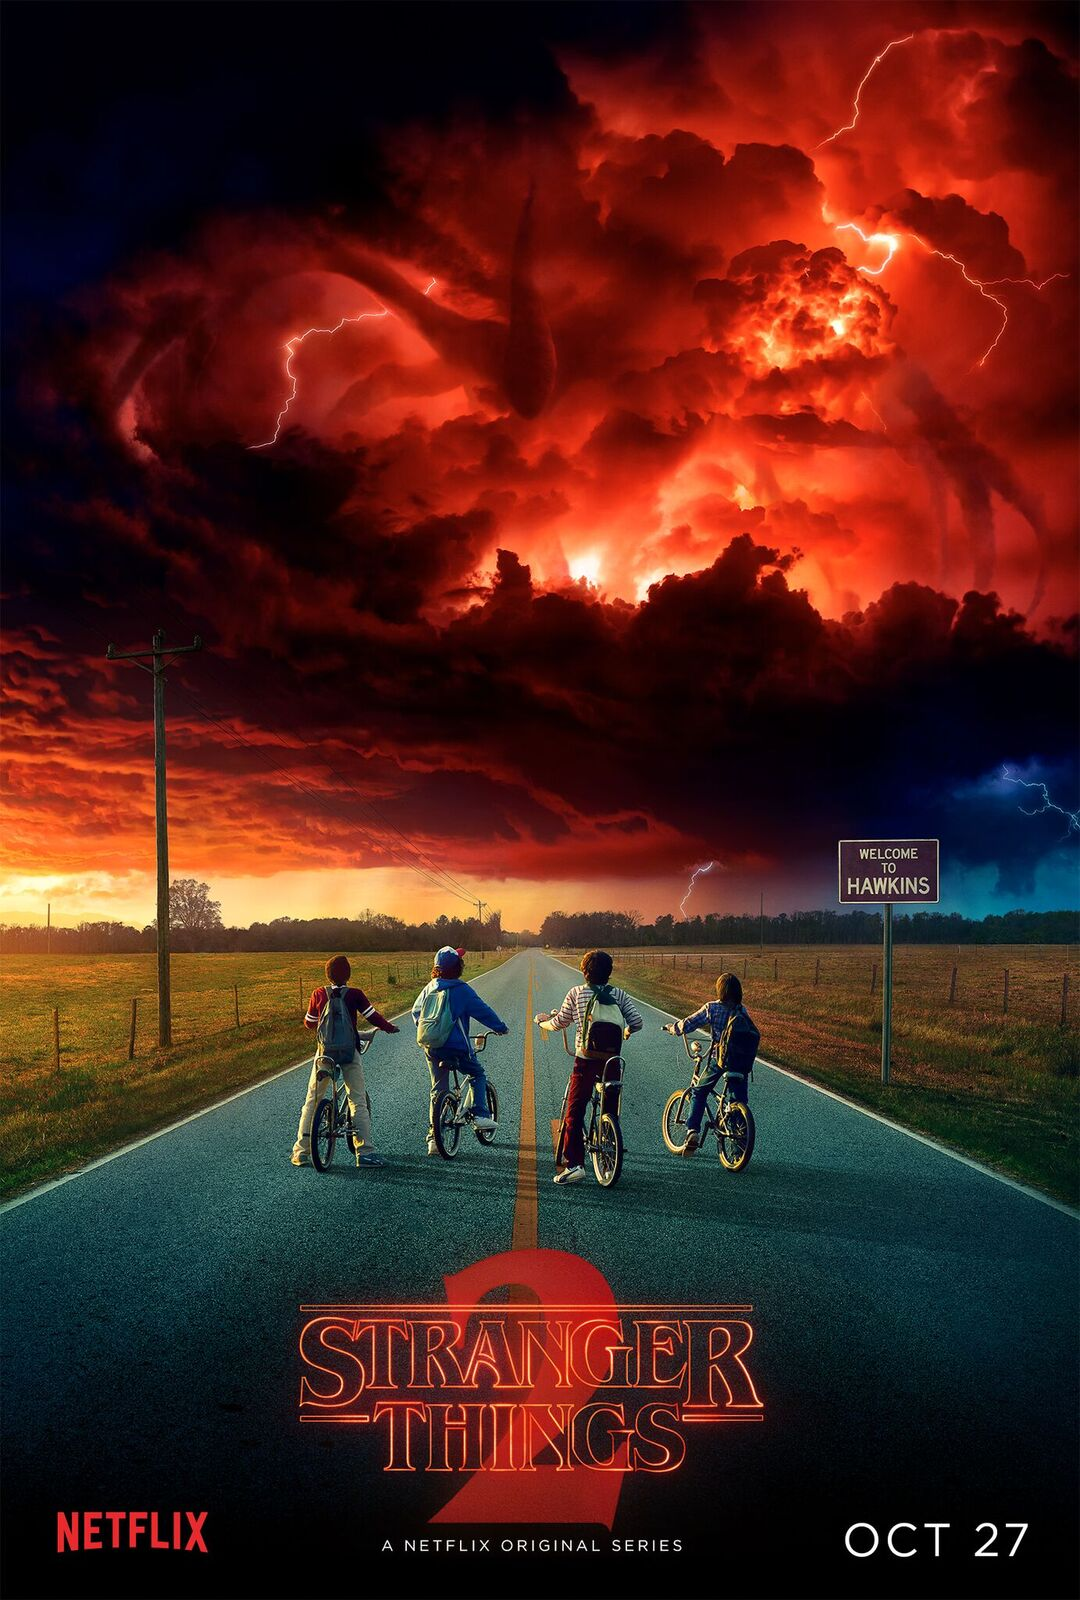 Stranger Things Season 2 Lives Up To The Hype